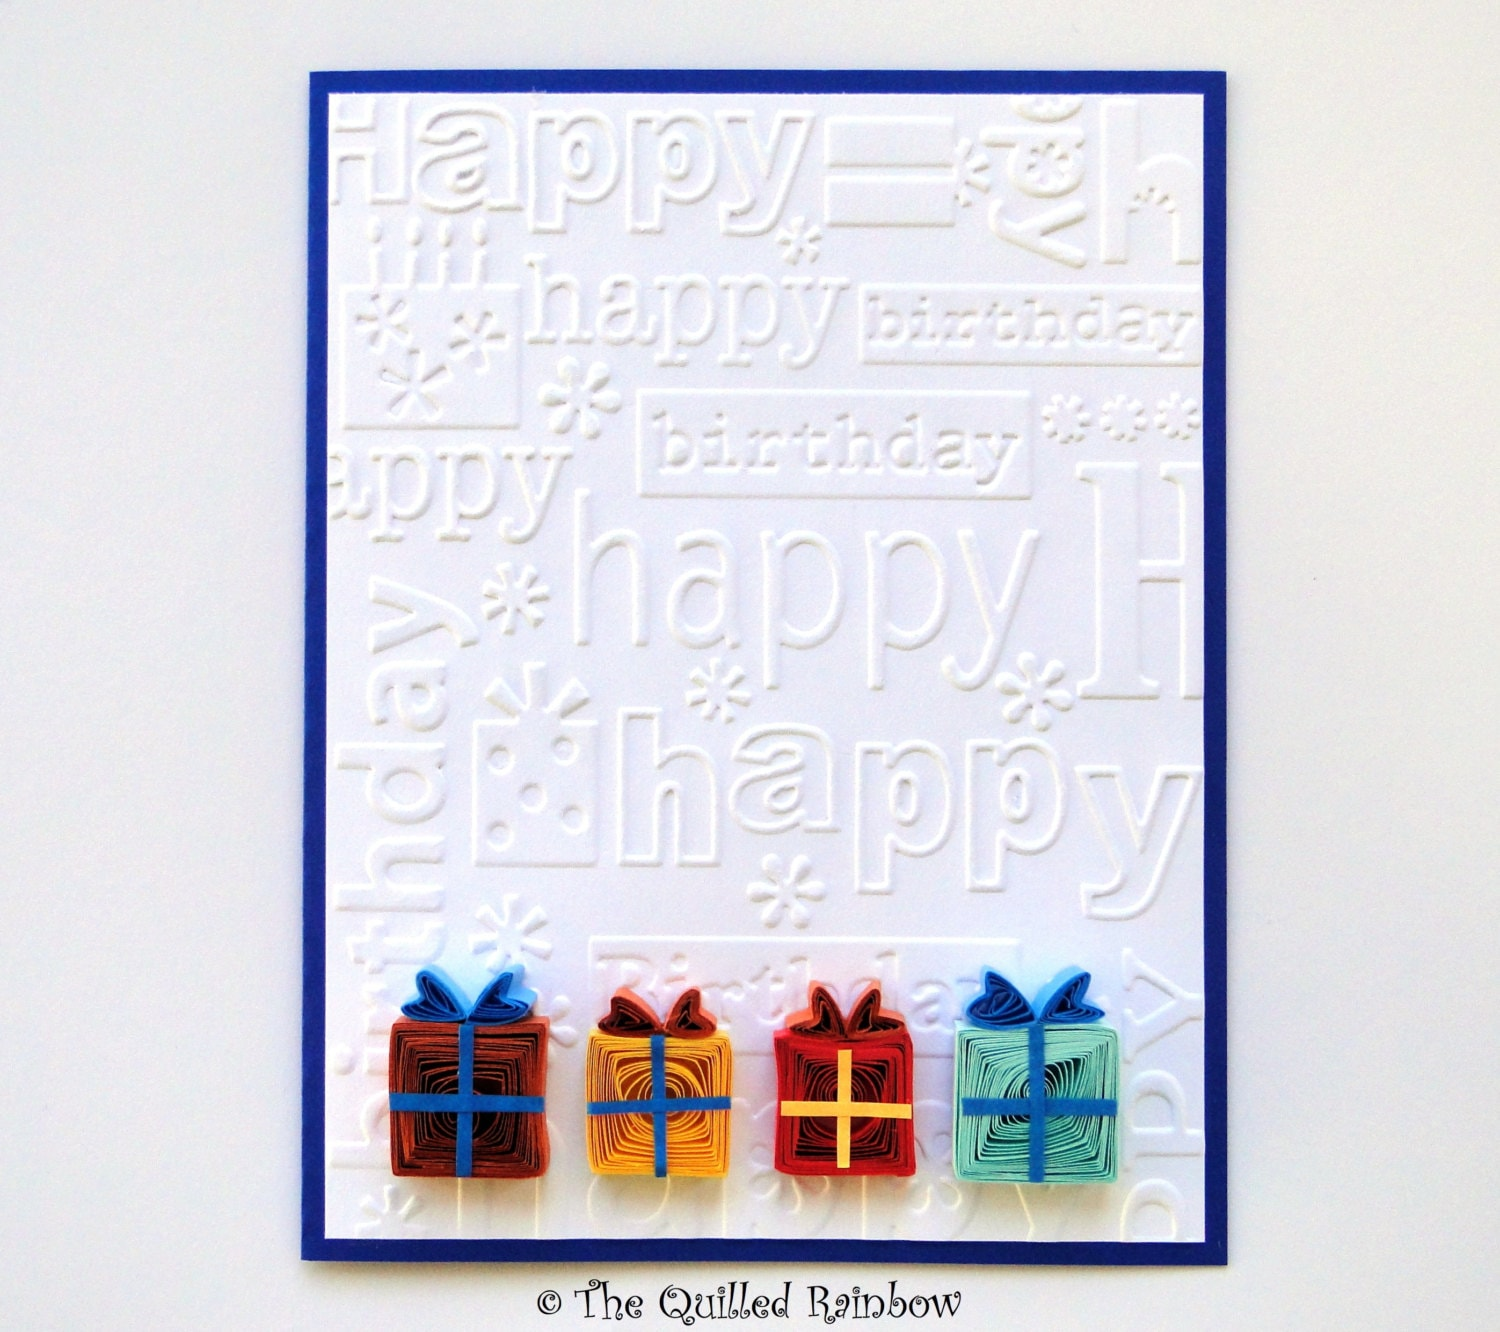 quilled birthday card colorful quilled gift boxes birthday etsy. Black Bedroom Furniture Sets. Home Design Ideas